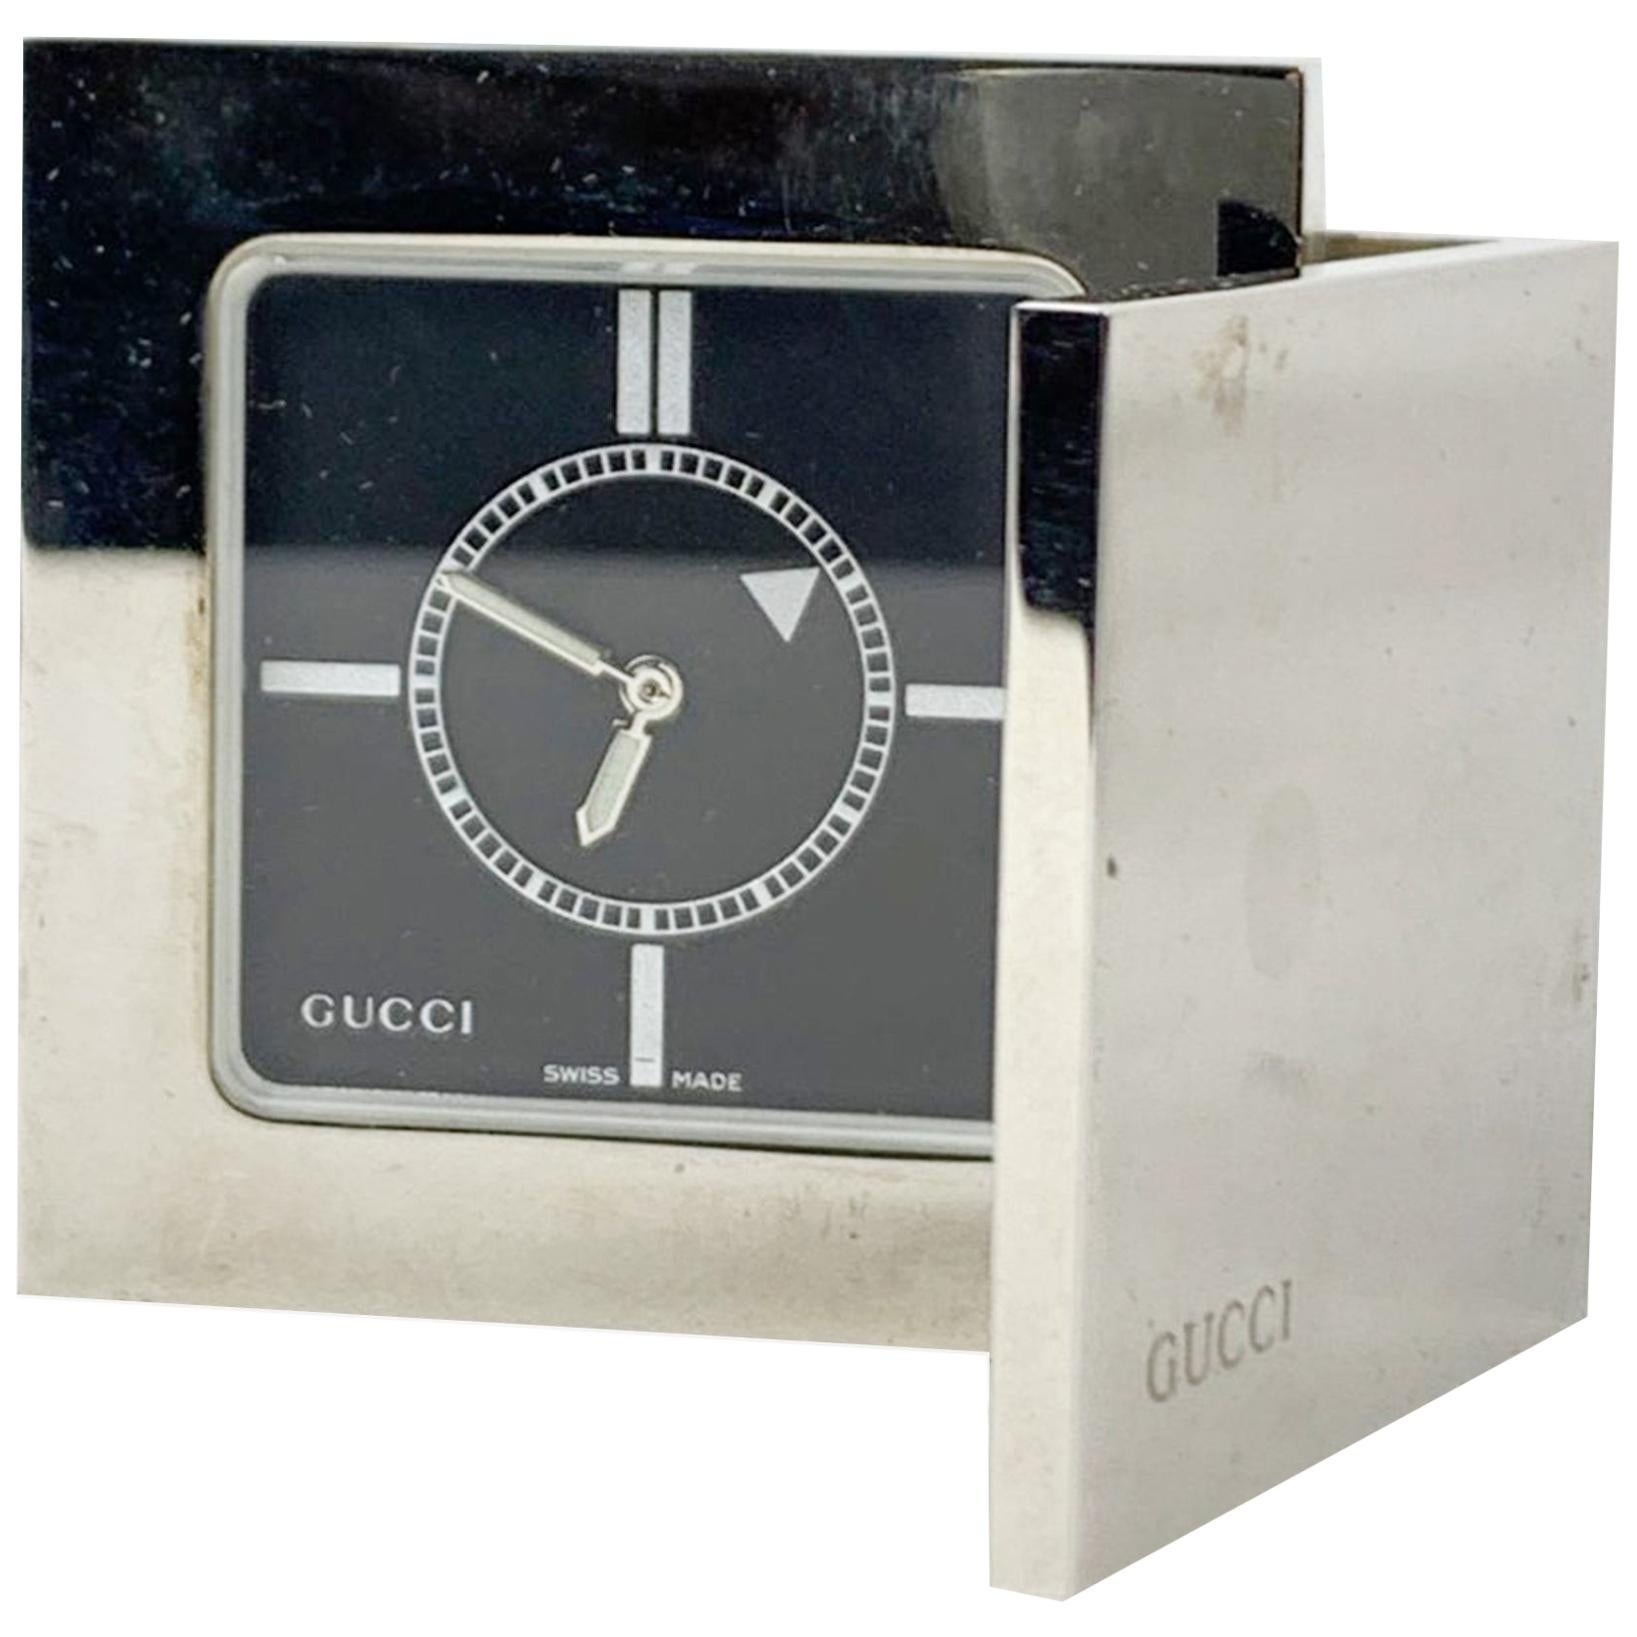 Gucci Vintage Stainless Steel Desk Table Travel Alarm Clock 0840